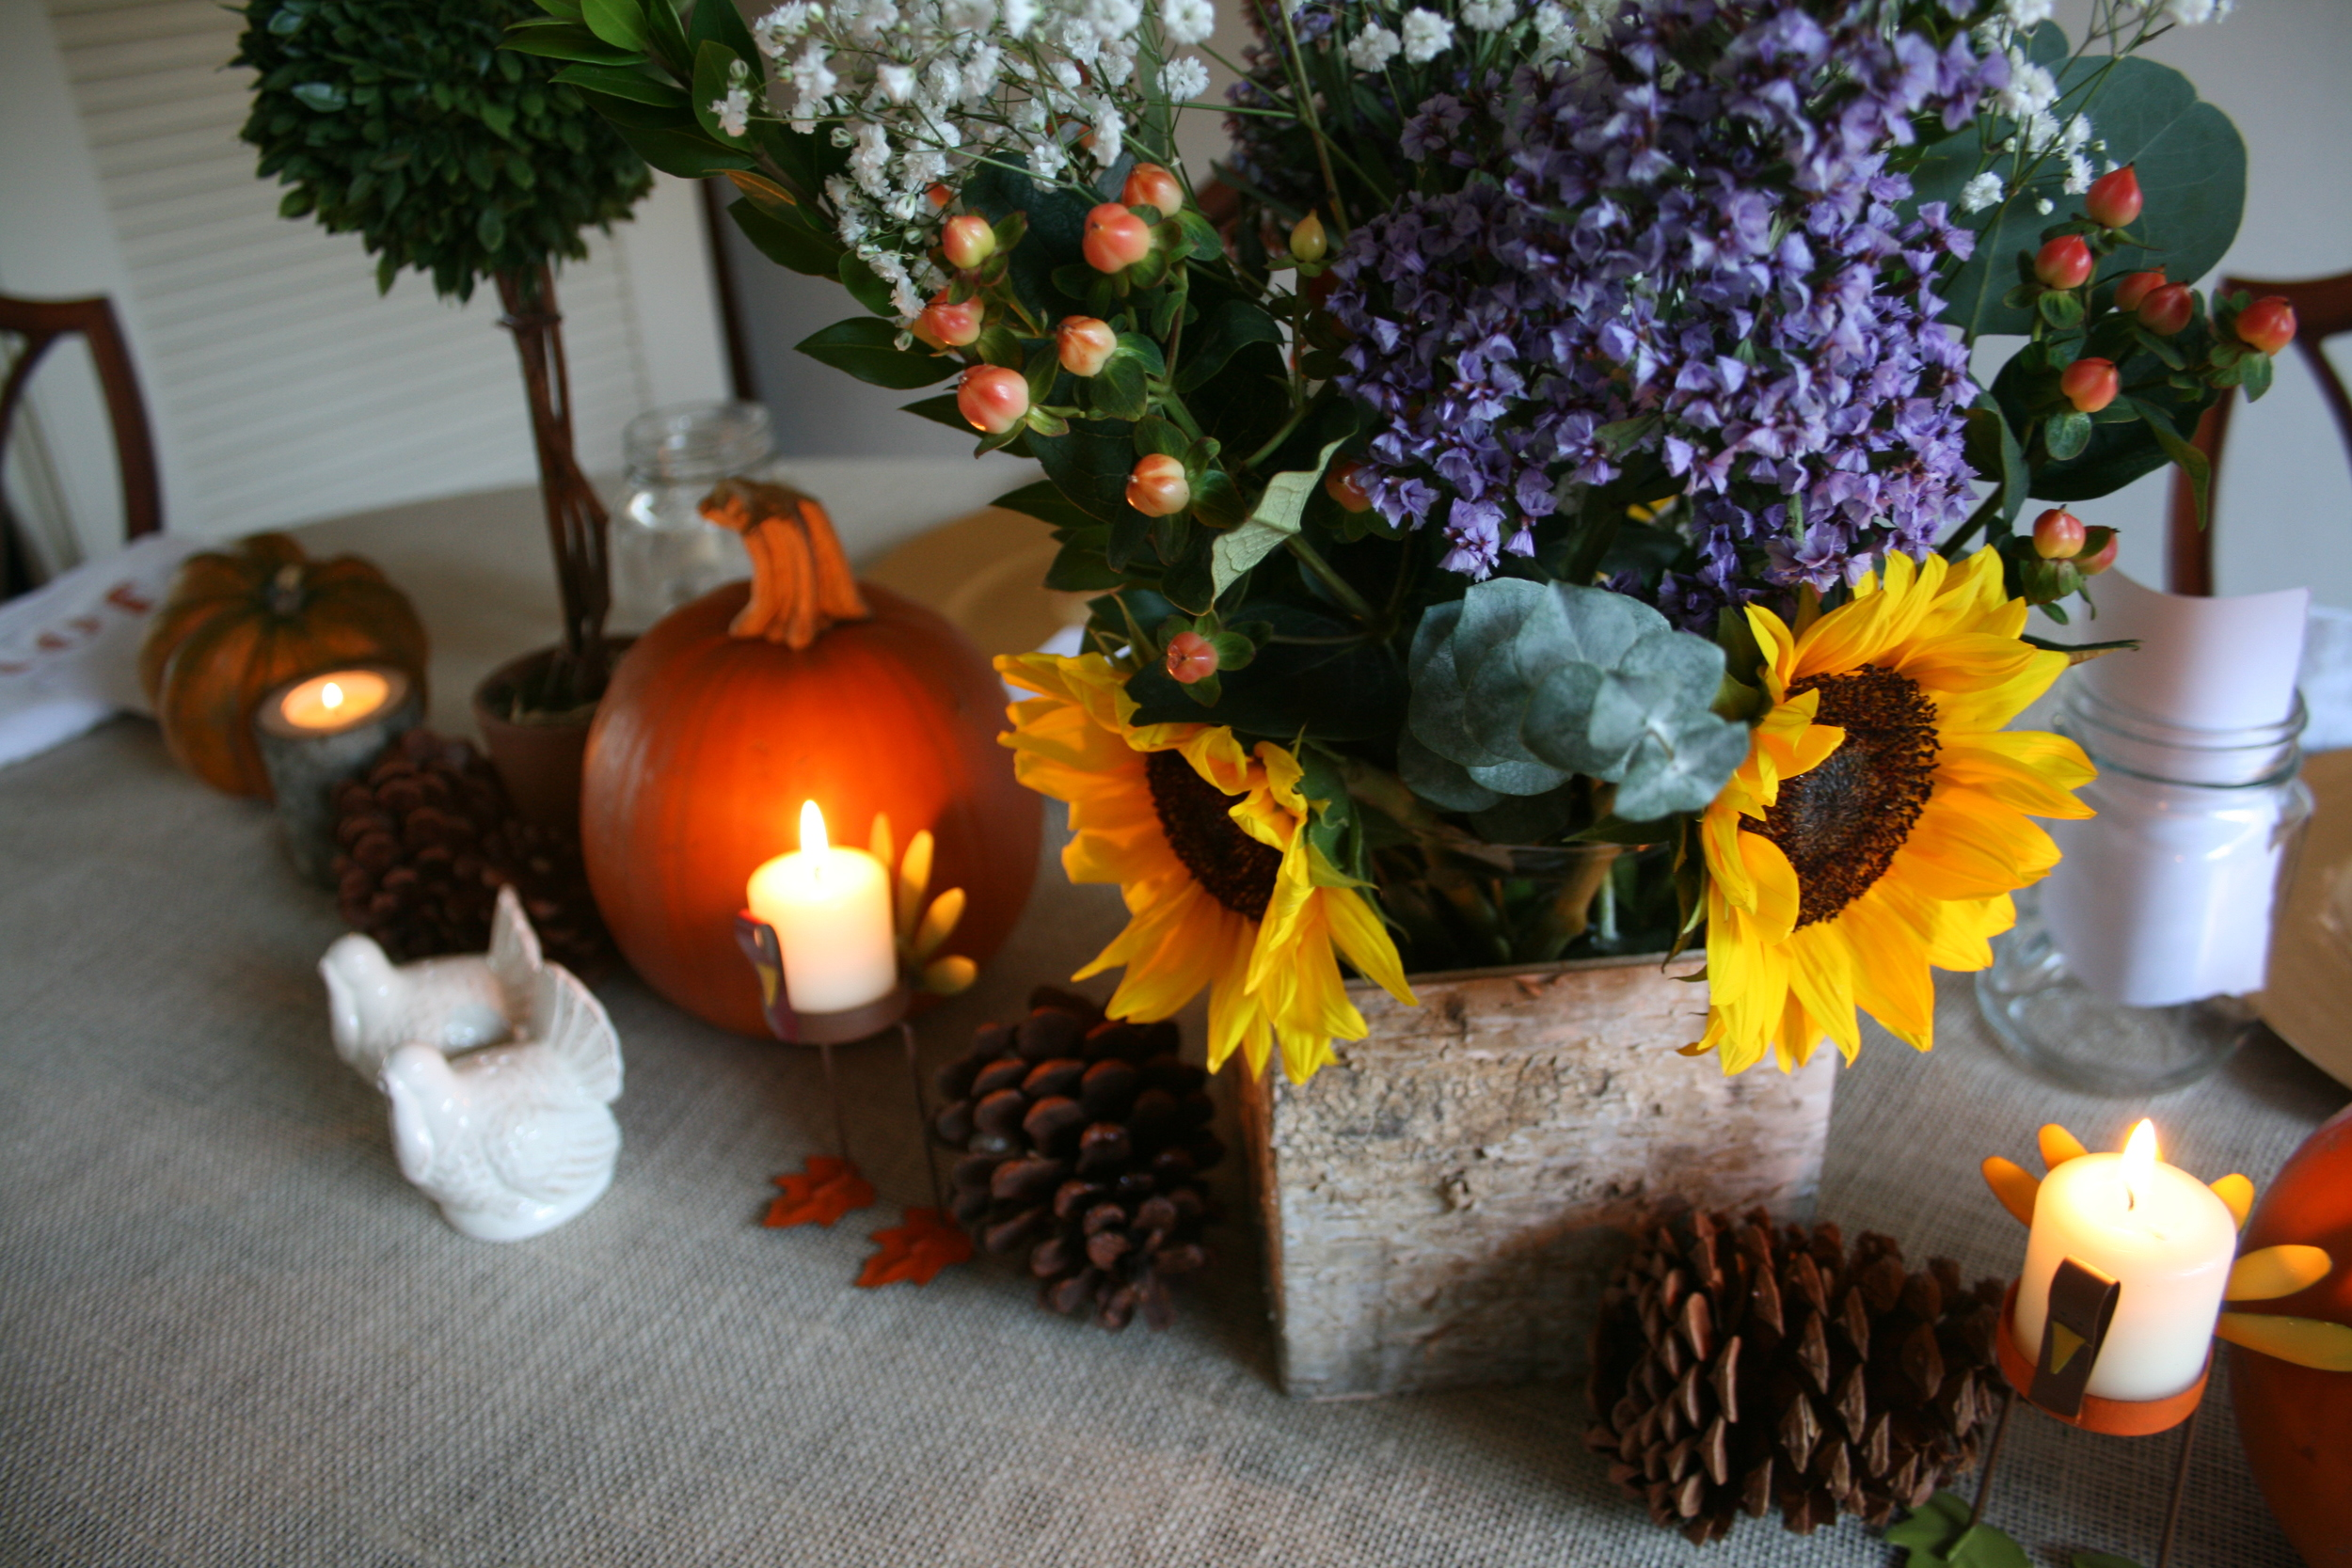 floral centerpieces, pinecones, and pumpkins.